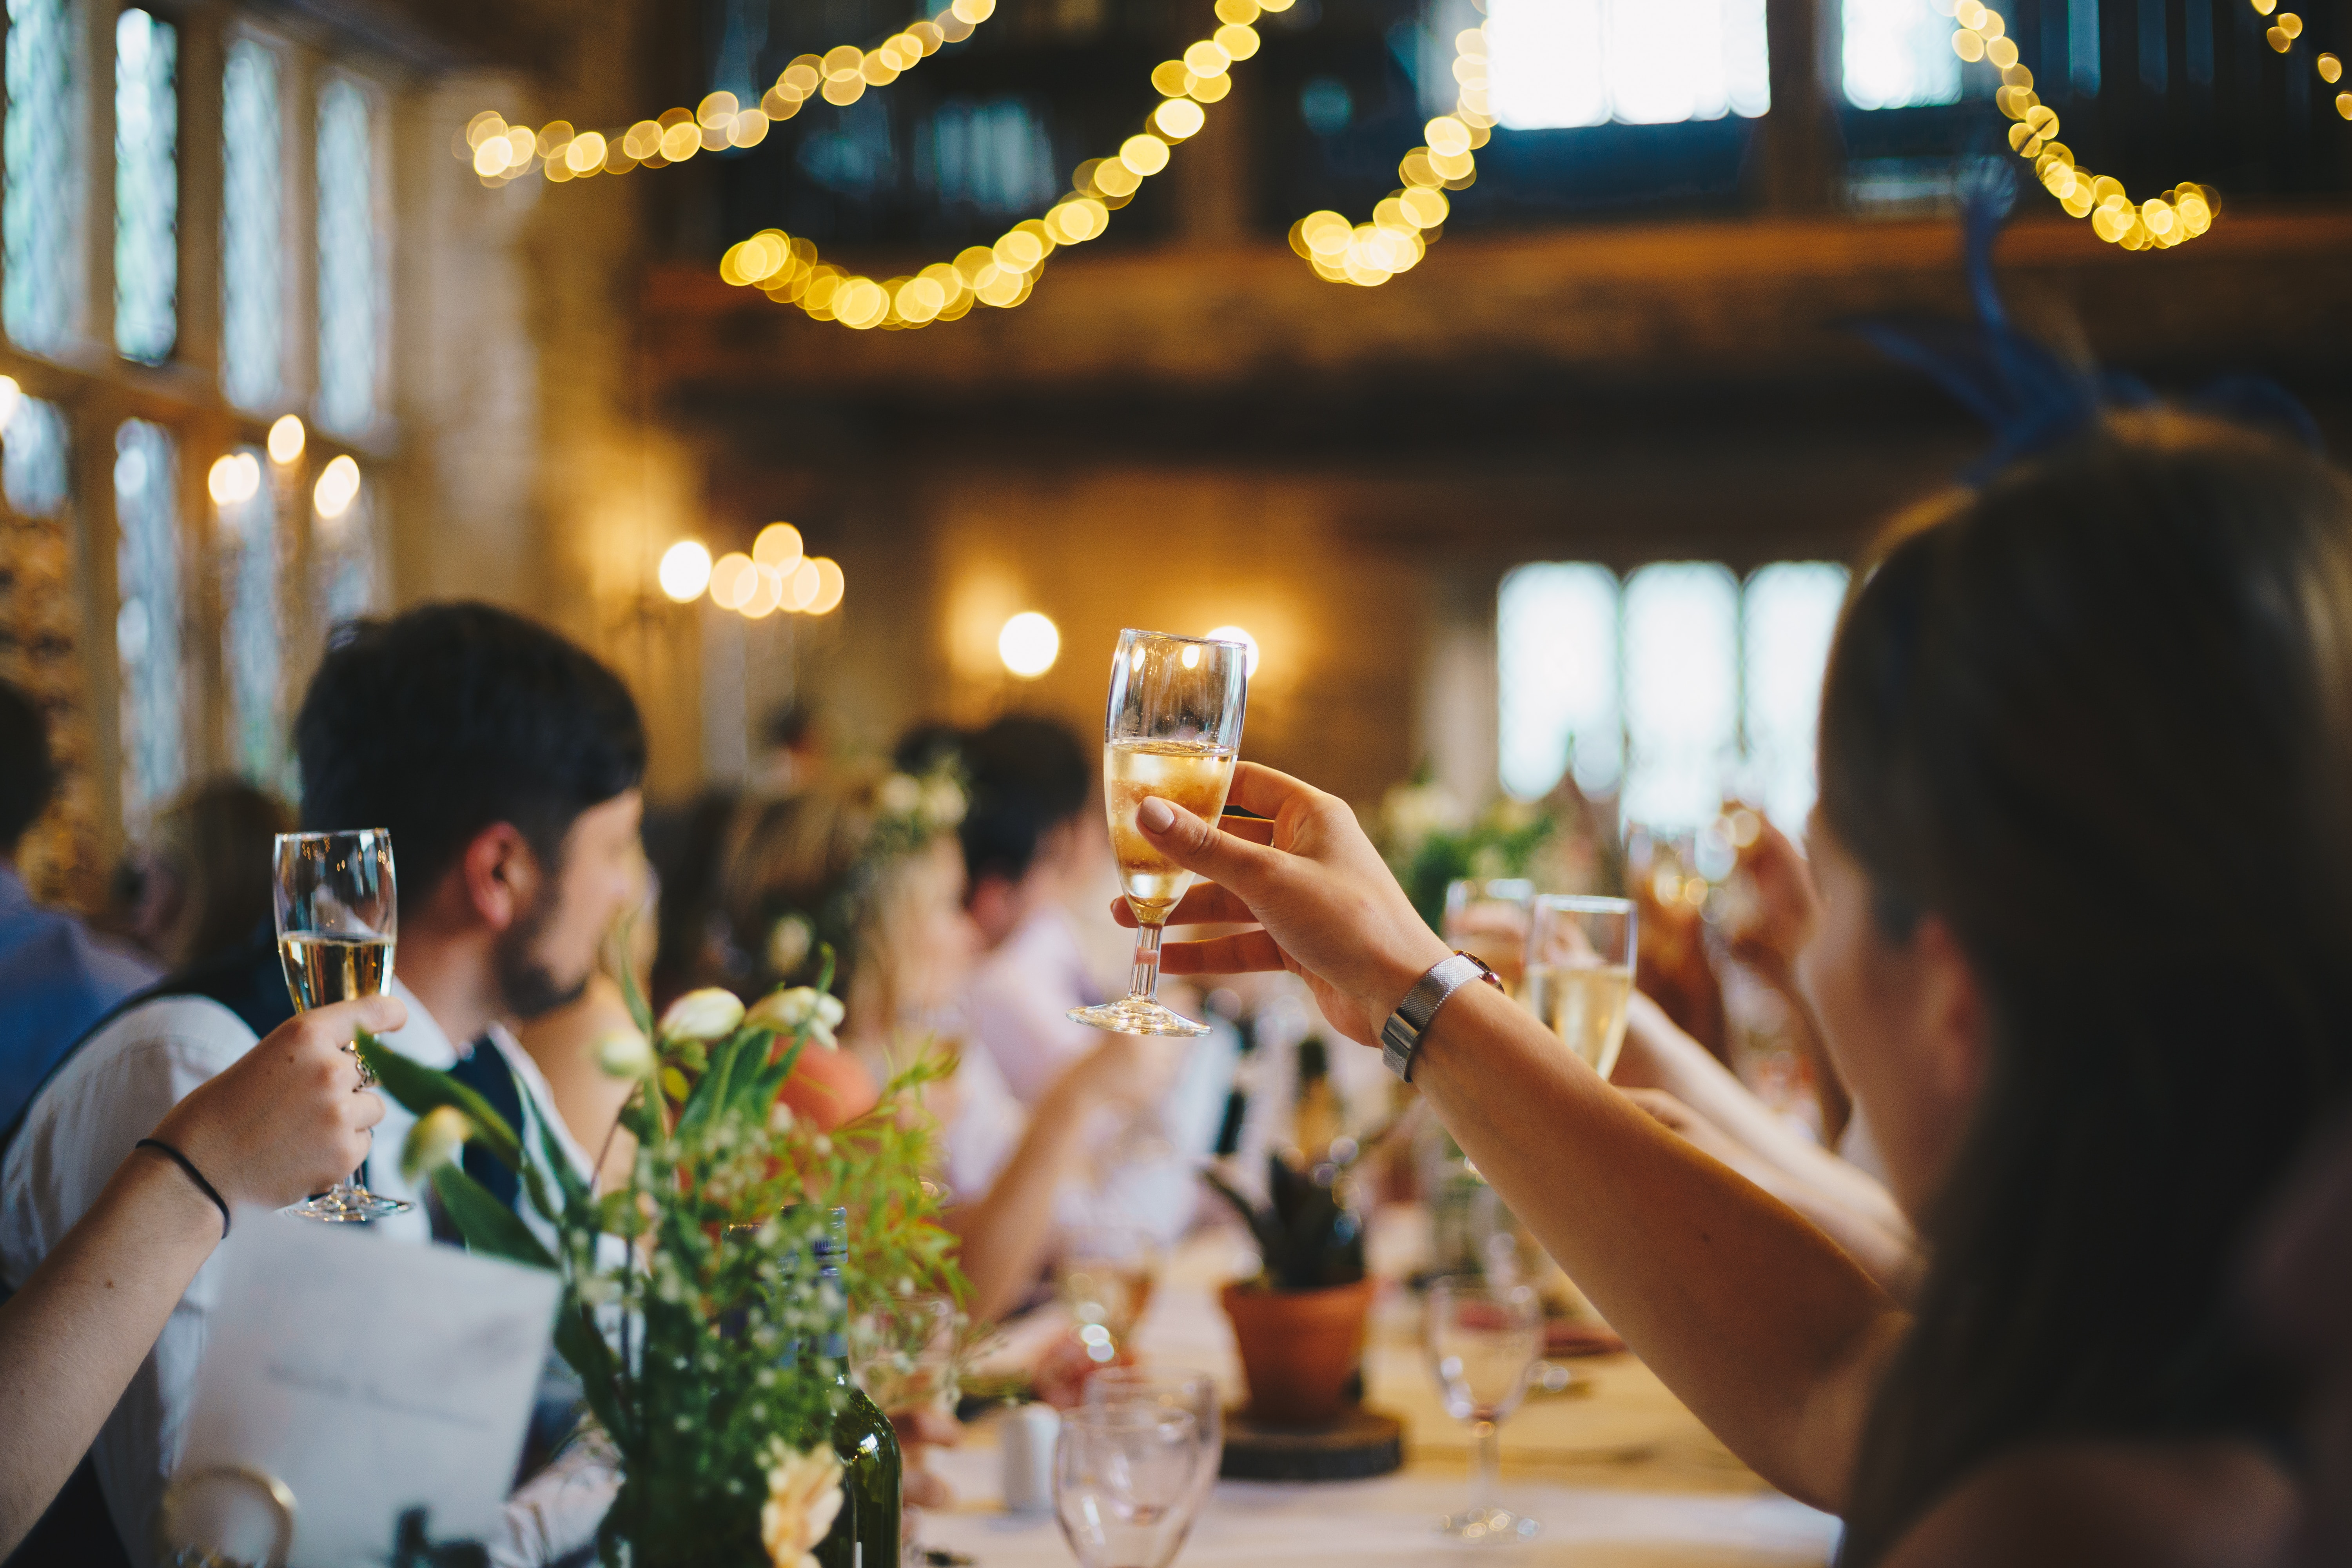 People sitting at a long table raising glasses at a party, warmly lit background